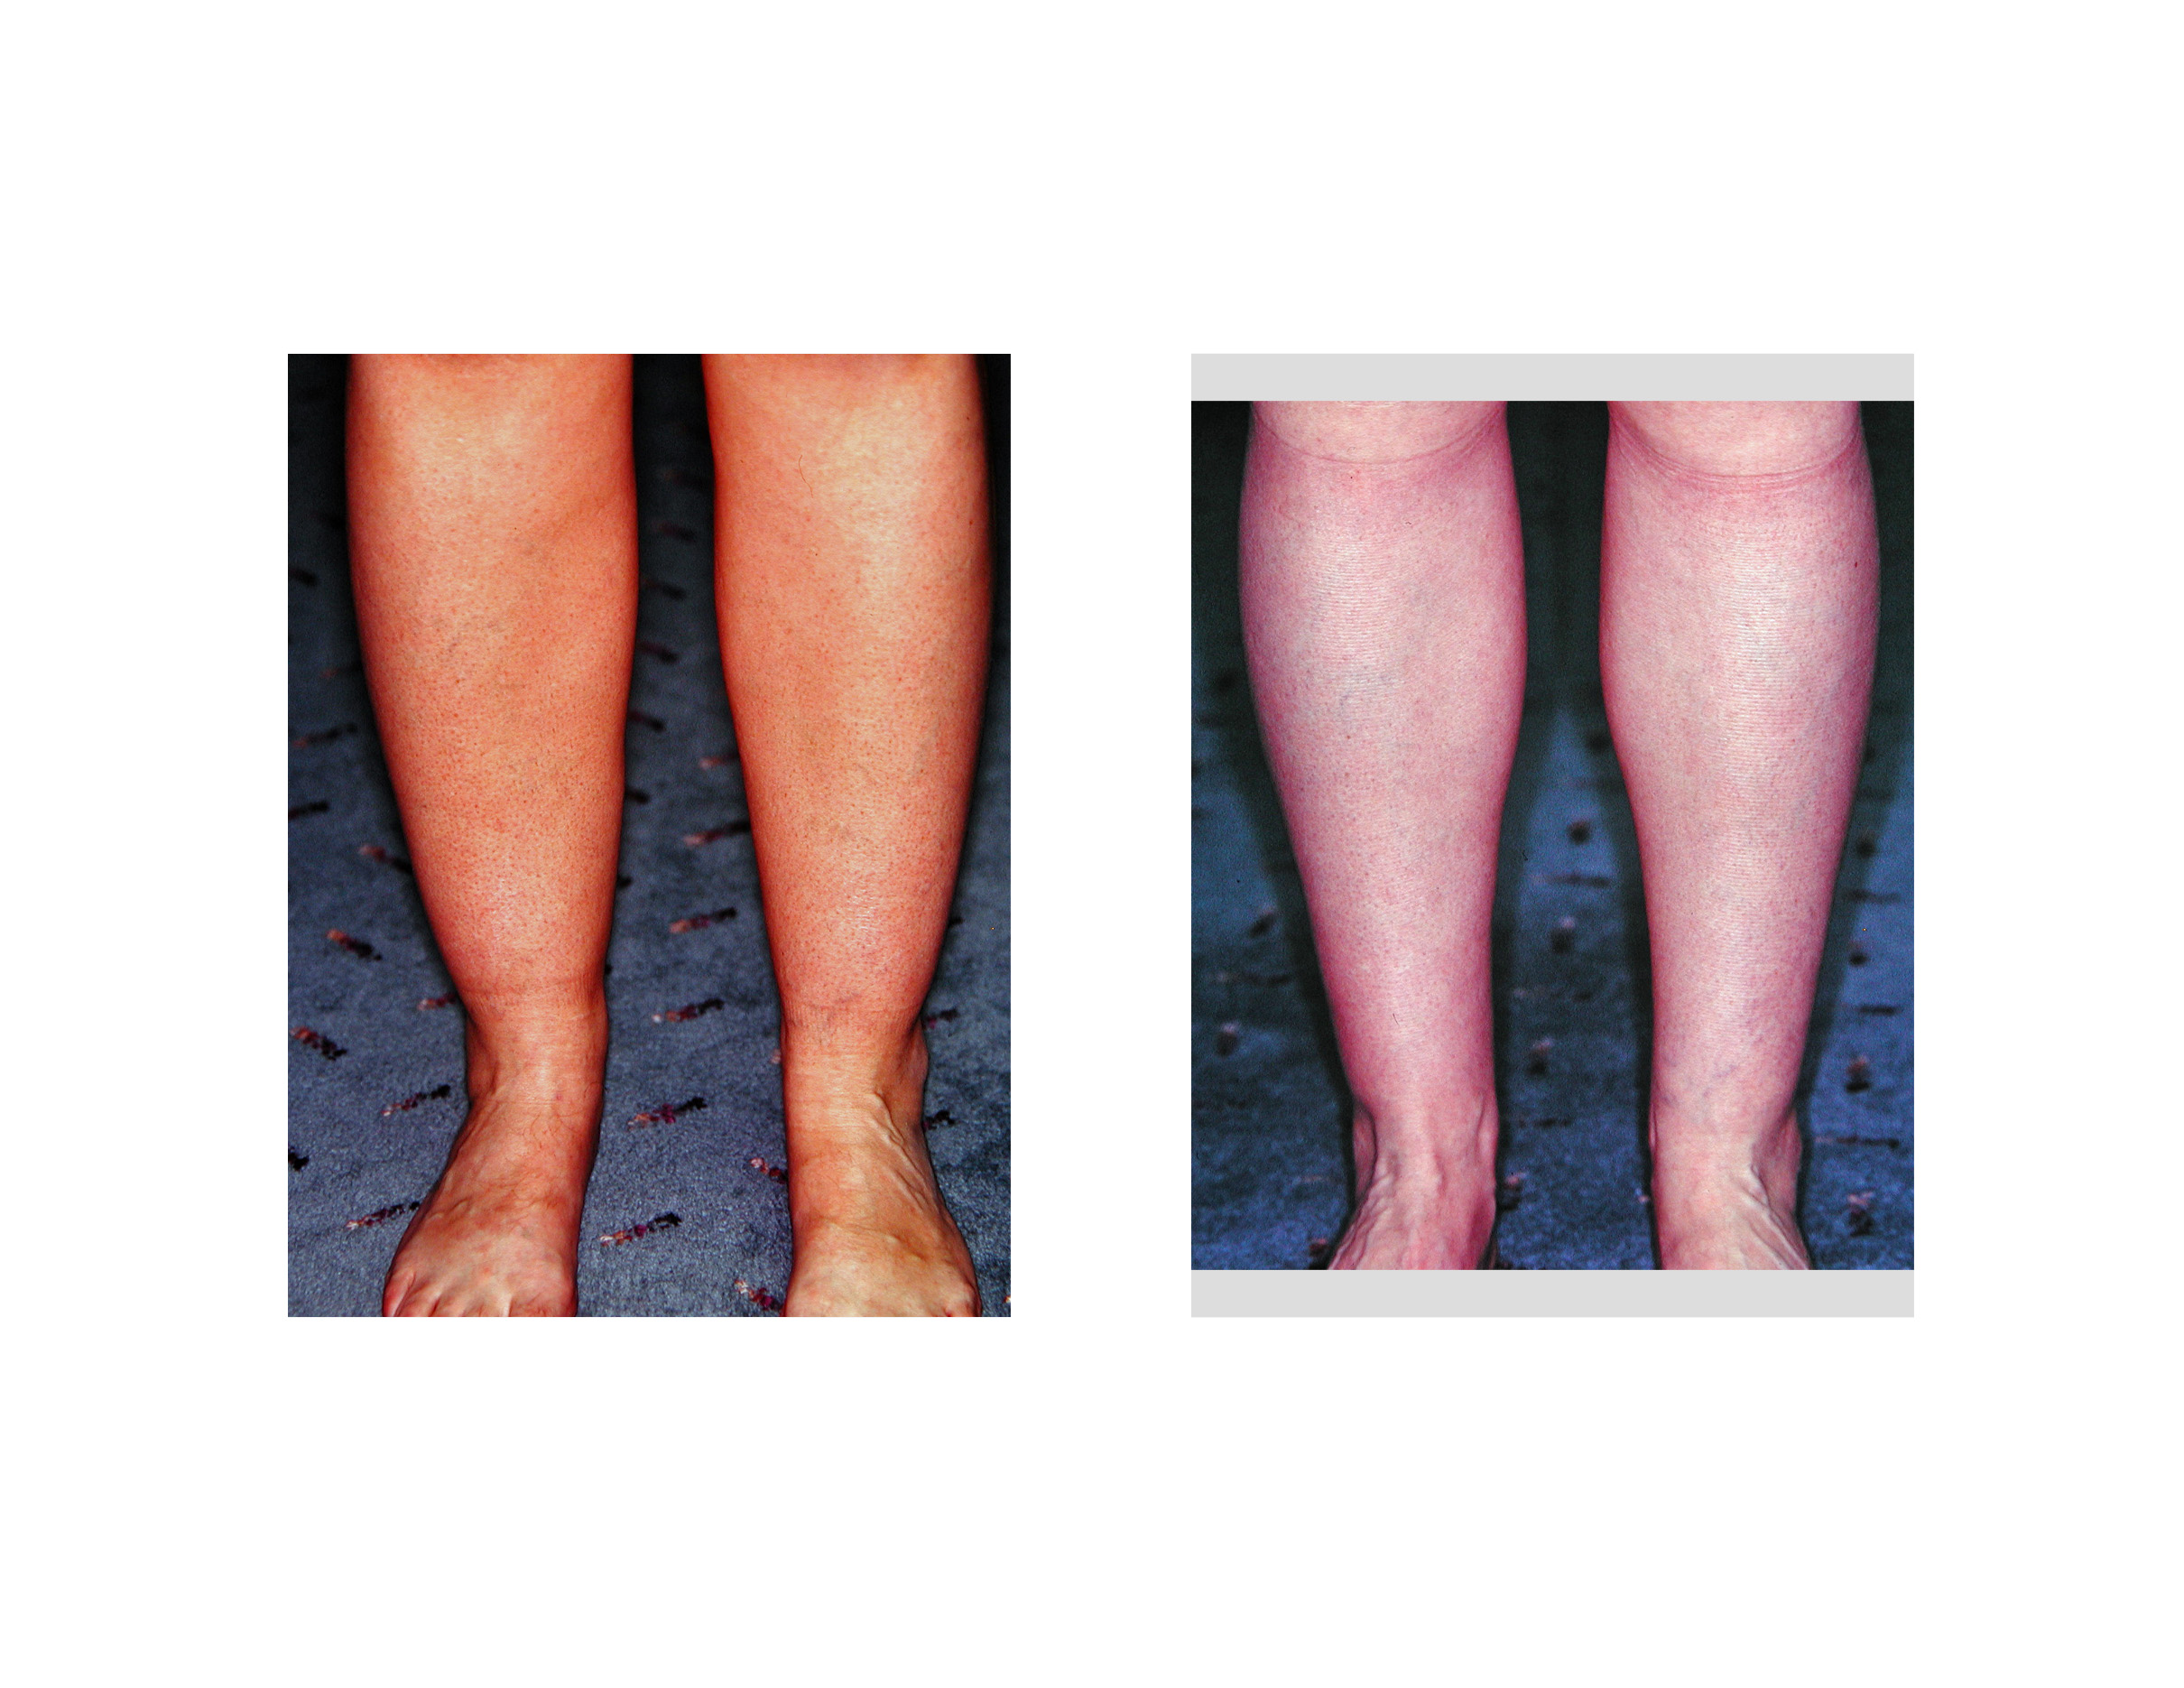 Liposuction Calves and Ankles